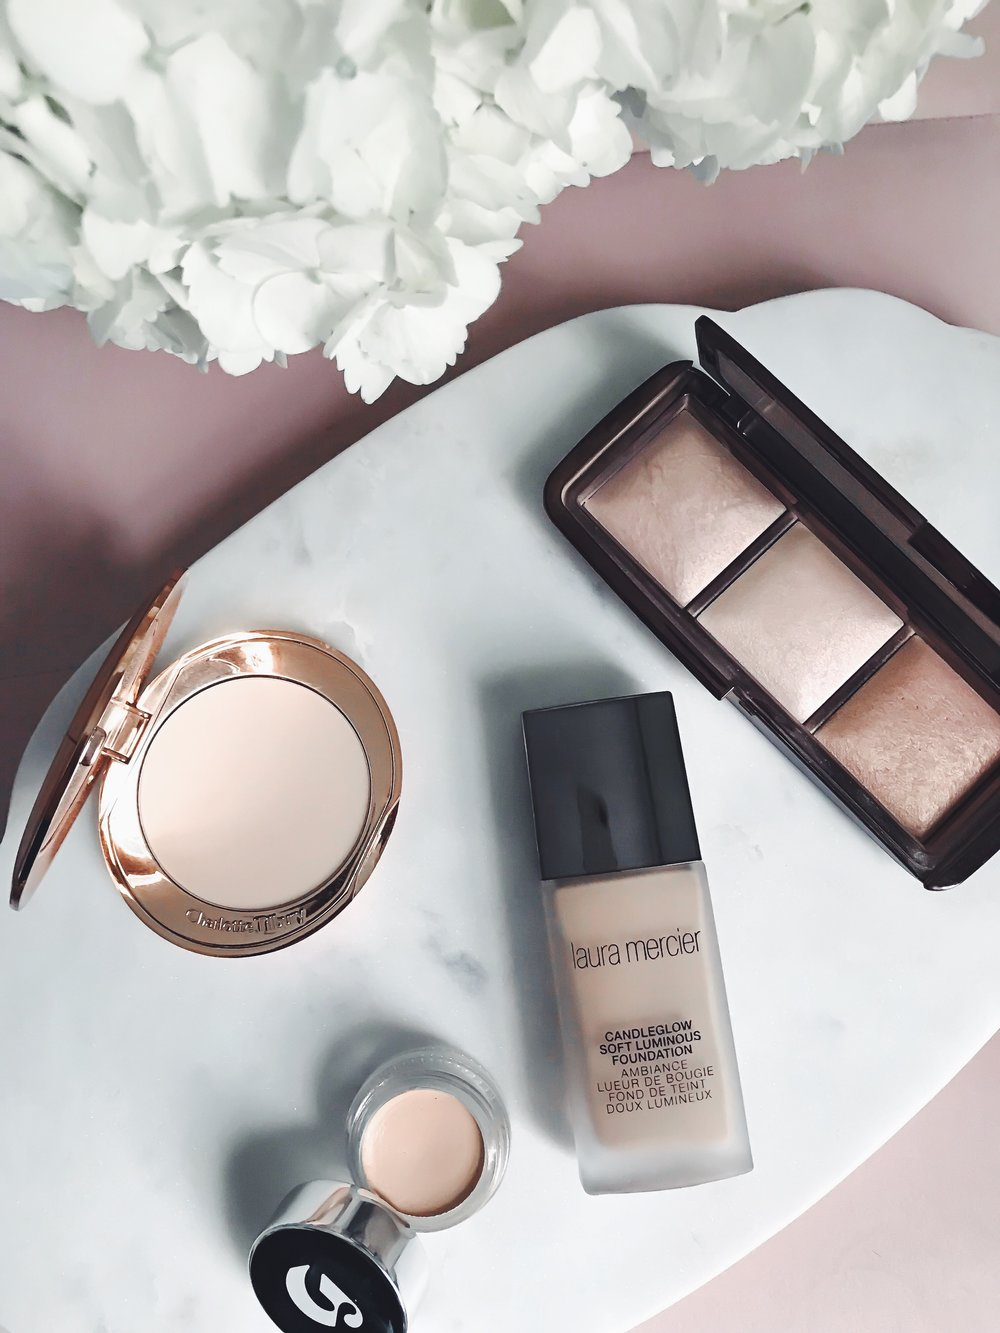 Recent Beauty Buys | Pine Barren Beauty | Laura Mercier foundation, Charlotte Tilbury setting powder, Glossier concealer, Hourglass ambient light palette, beauty product review, beauty product flat lay